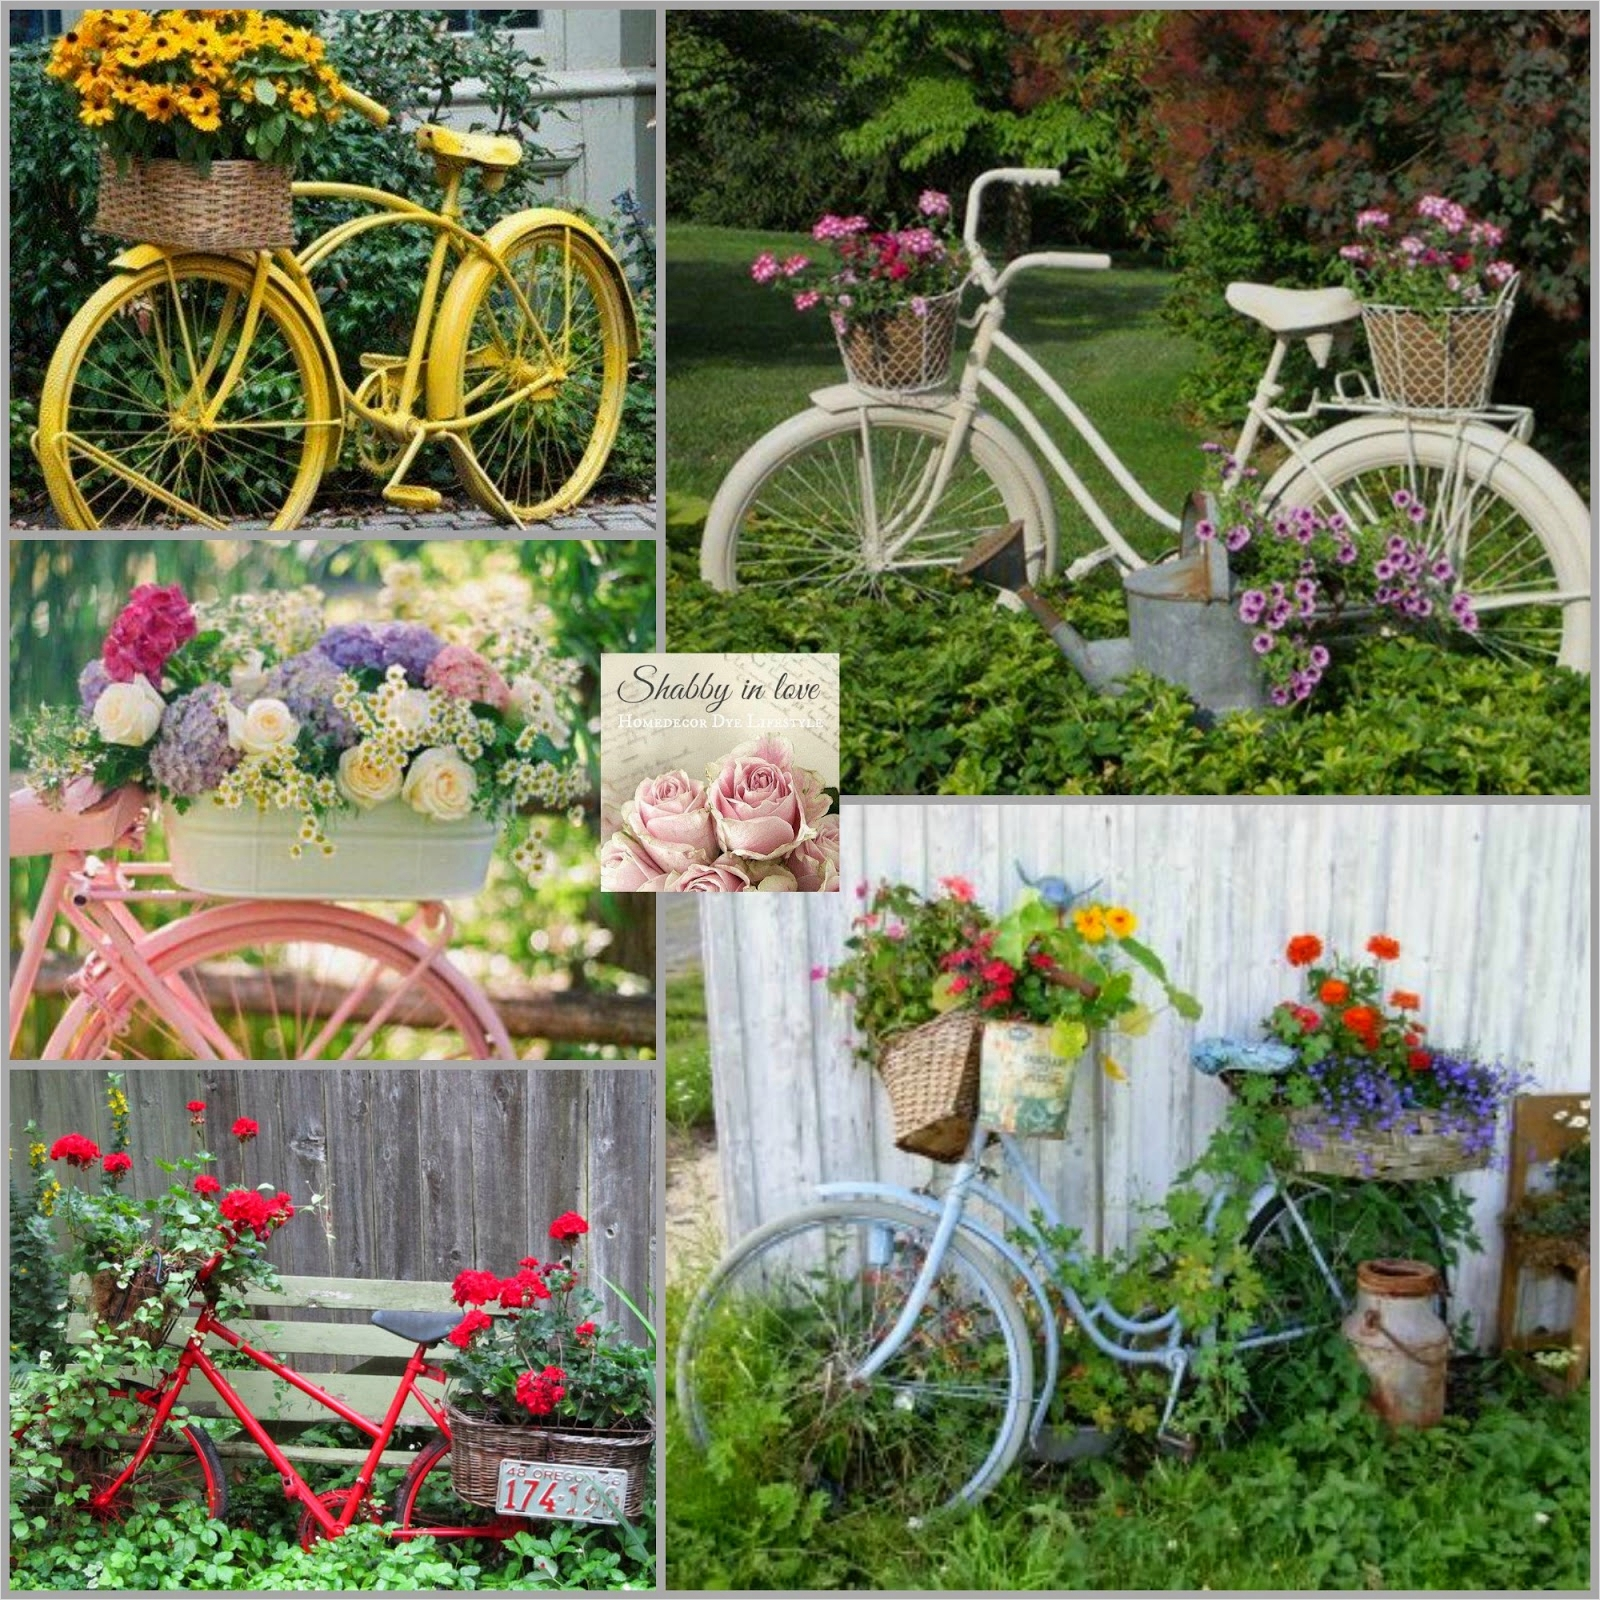 42 Beautiful Vintage Yard Decorating Ideas 43 Shabby In Love Lovely Garden Container Ideas 9